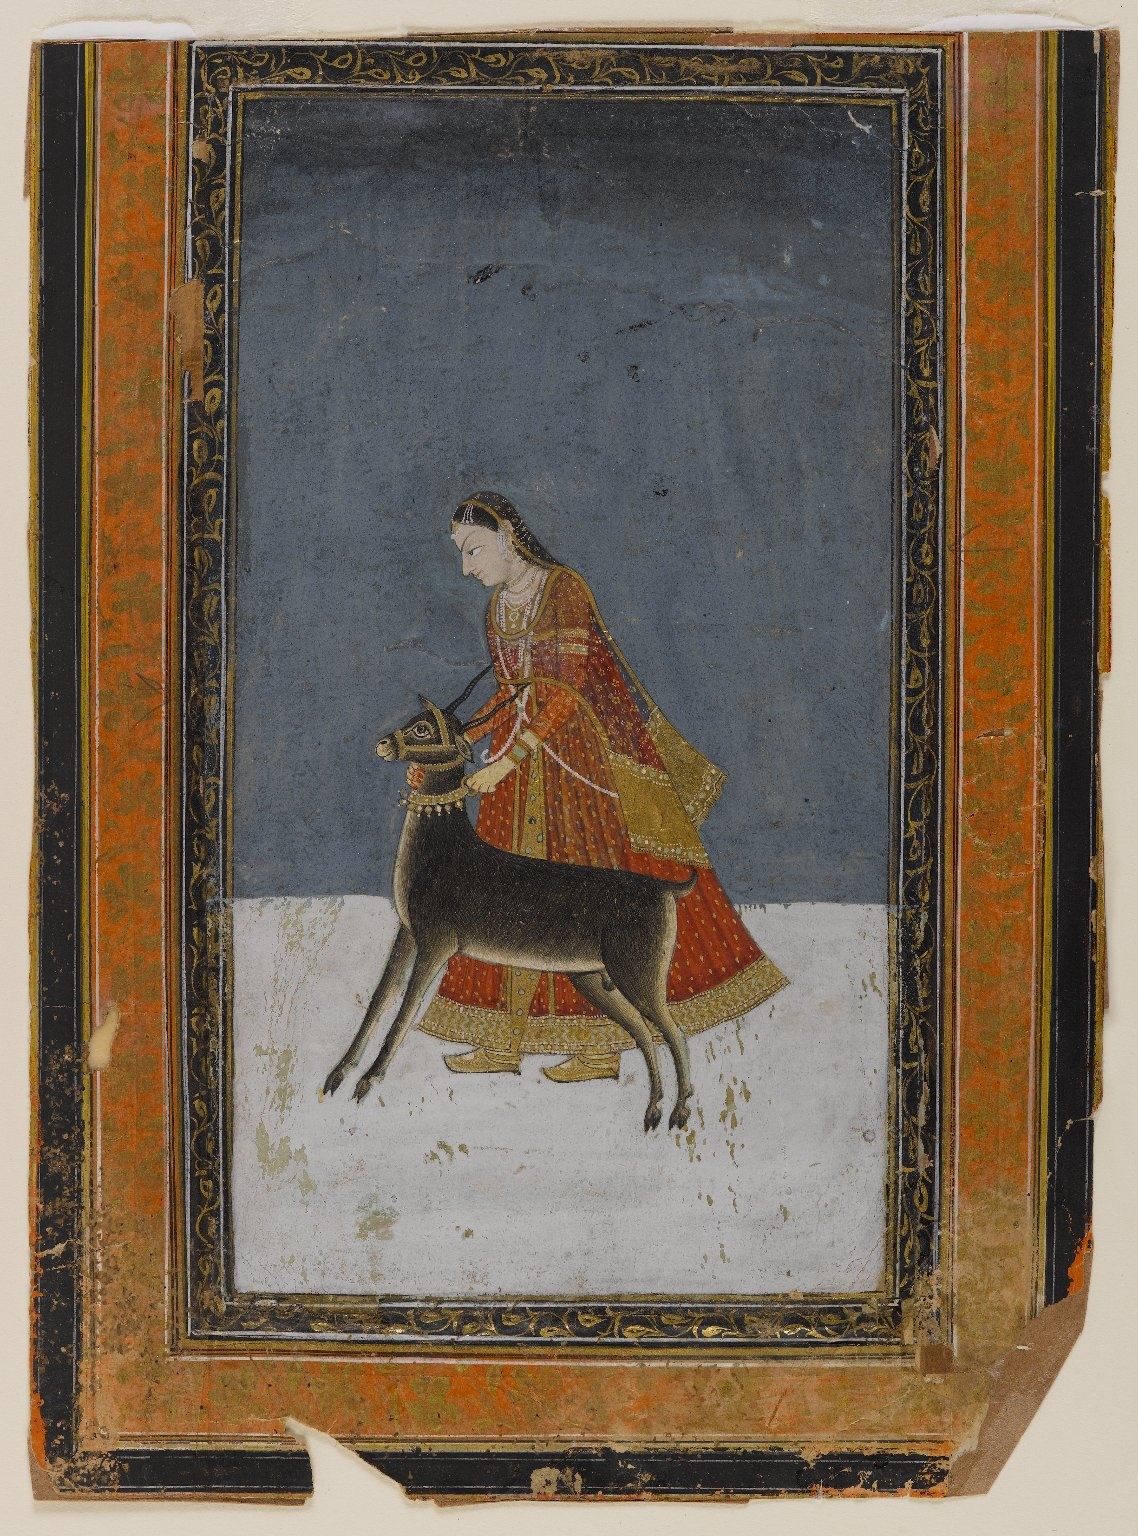 Lady with a Black Buck - Indian Miniature Painting, Circa 1750